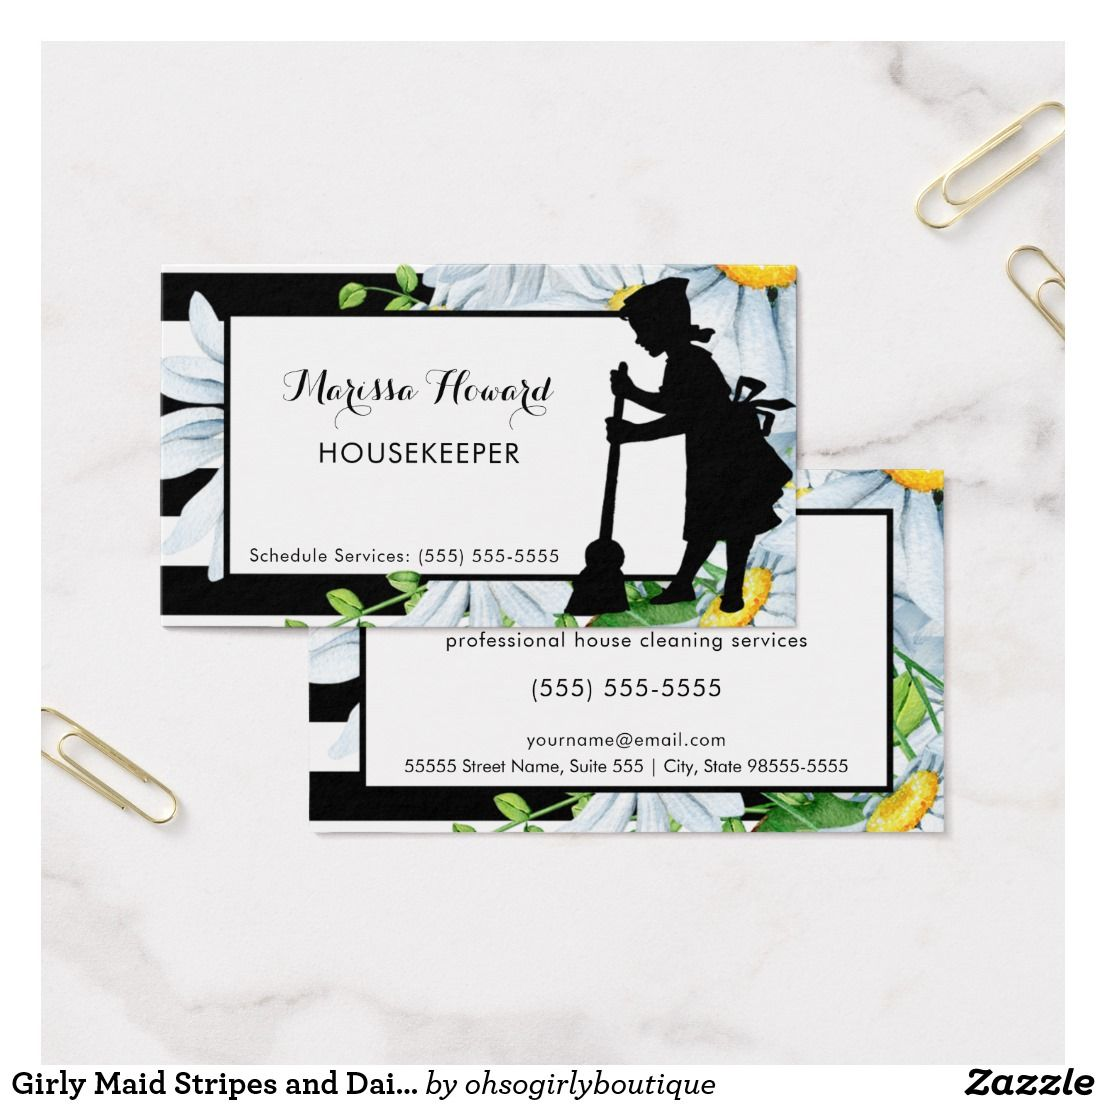 Girly maid stripes and daisy floral housekeeper business card girly maid stripes and daisy floral housekeeper business card magicingreecefo Gallery